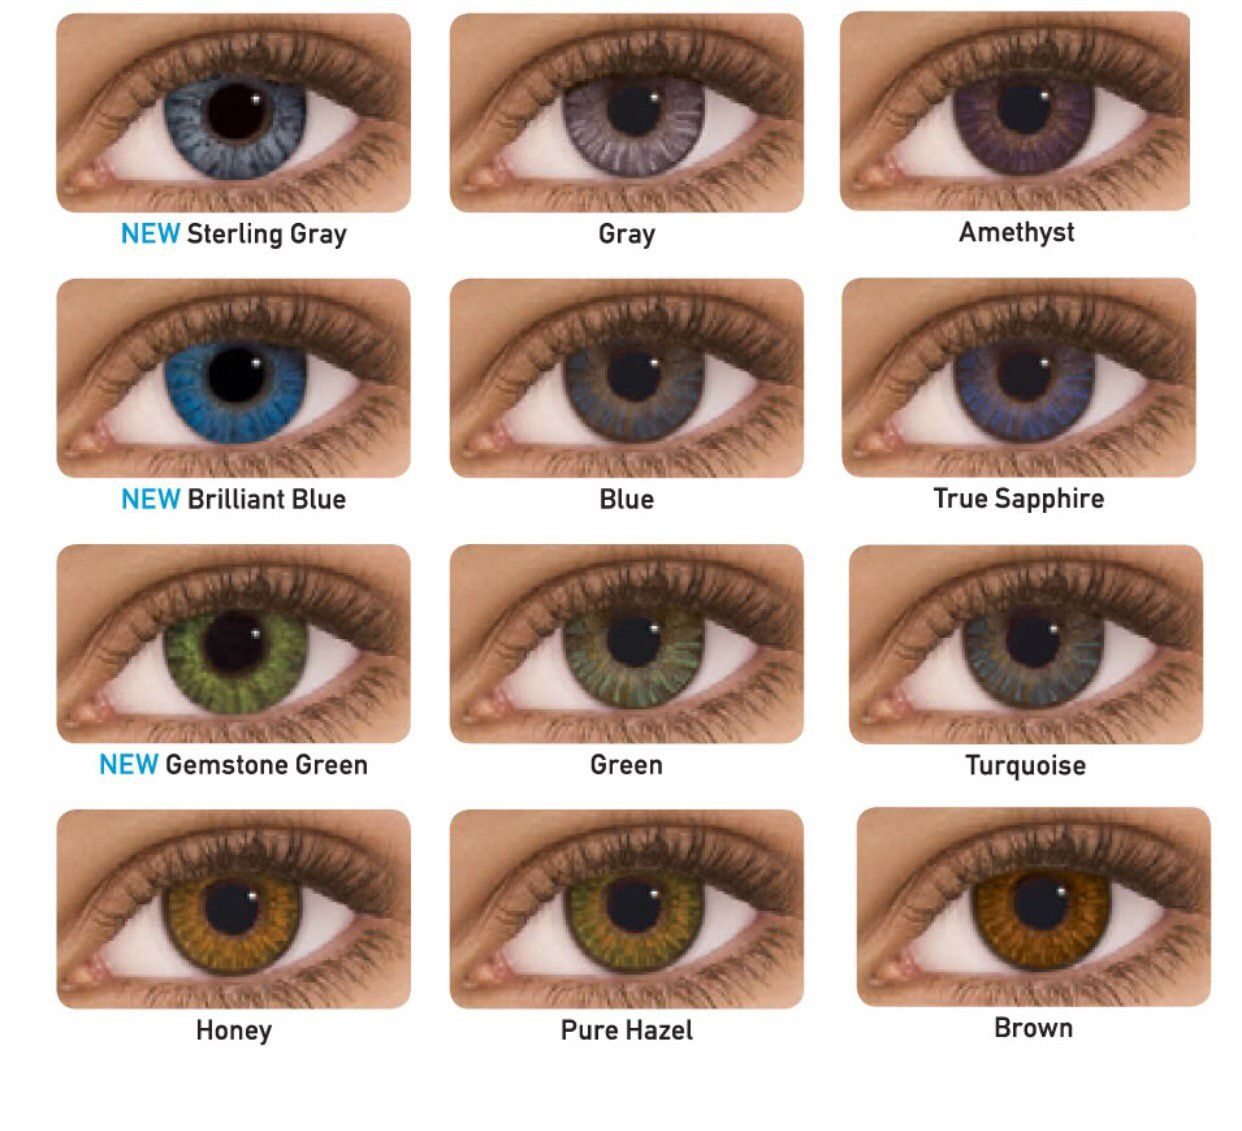 These Beautiful Color Contacts Fresh Looks Blend Well With Your Eye Color These Are Very Contact Lenses Colored Coloured Contact Lenses Green Contacts Lenses